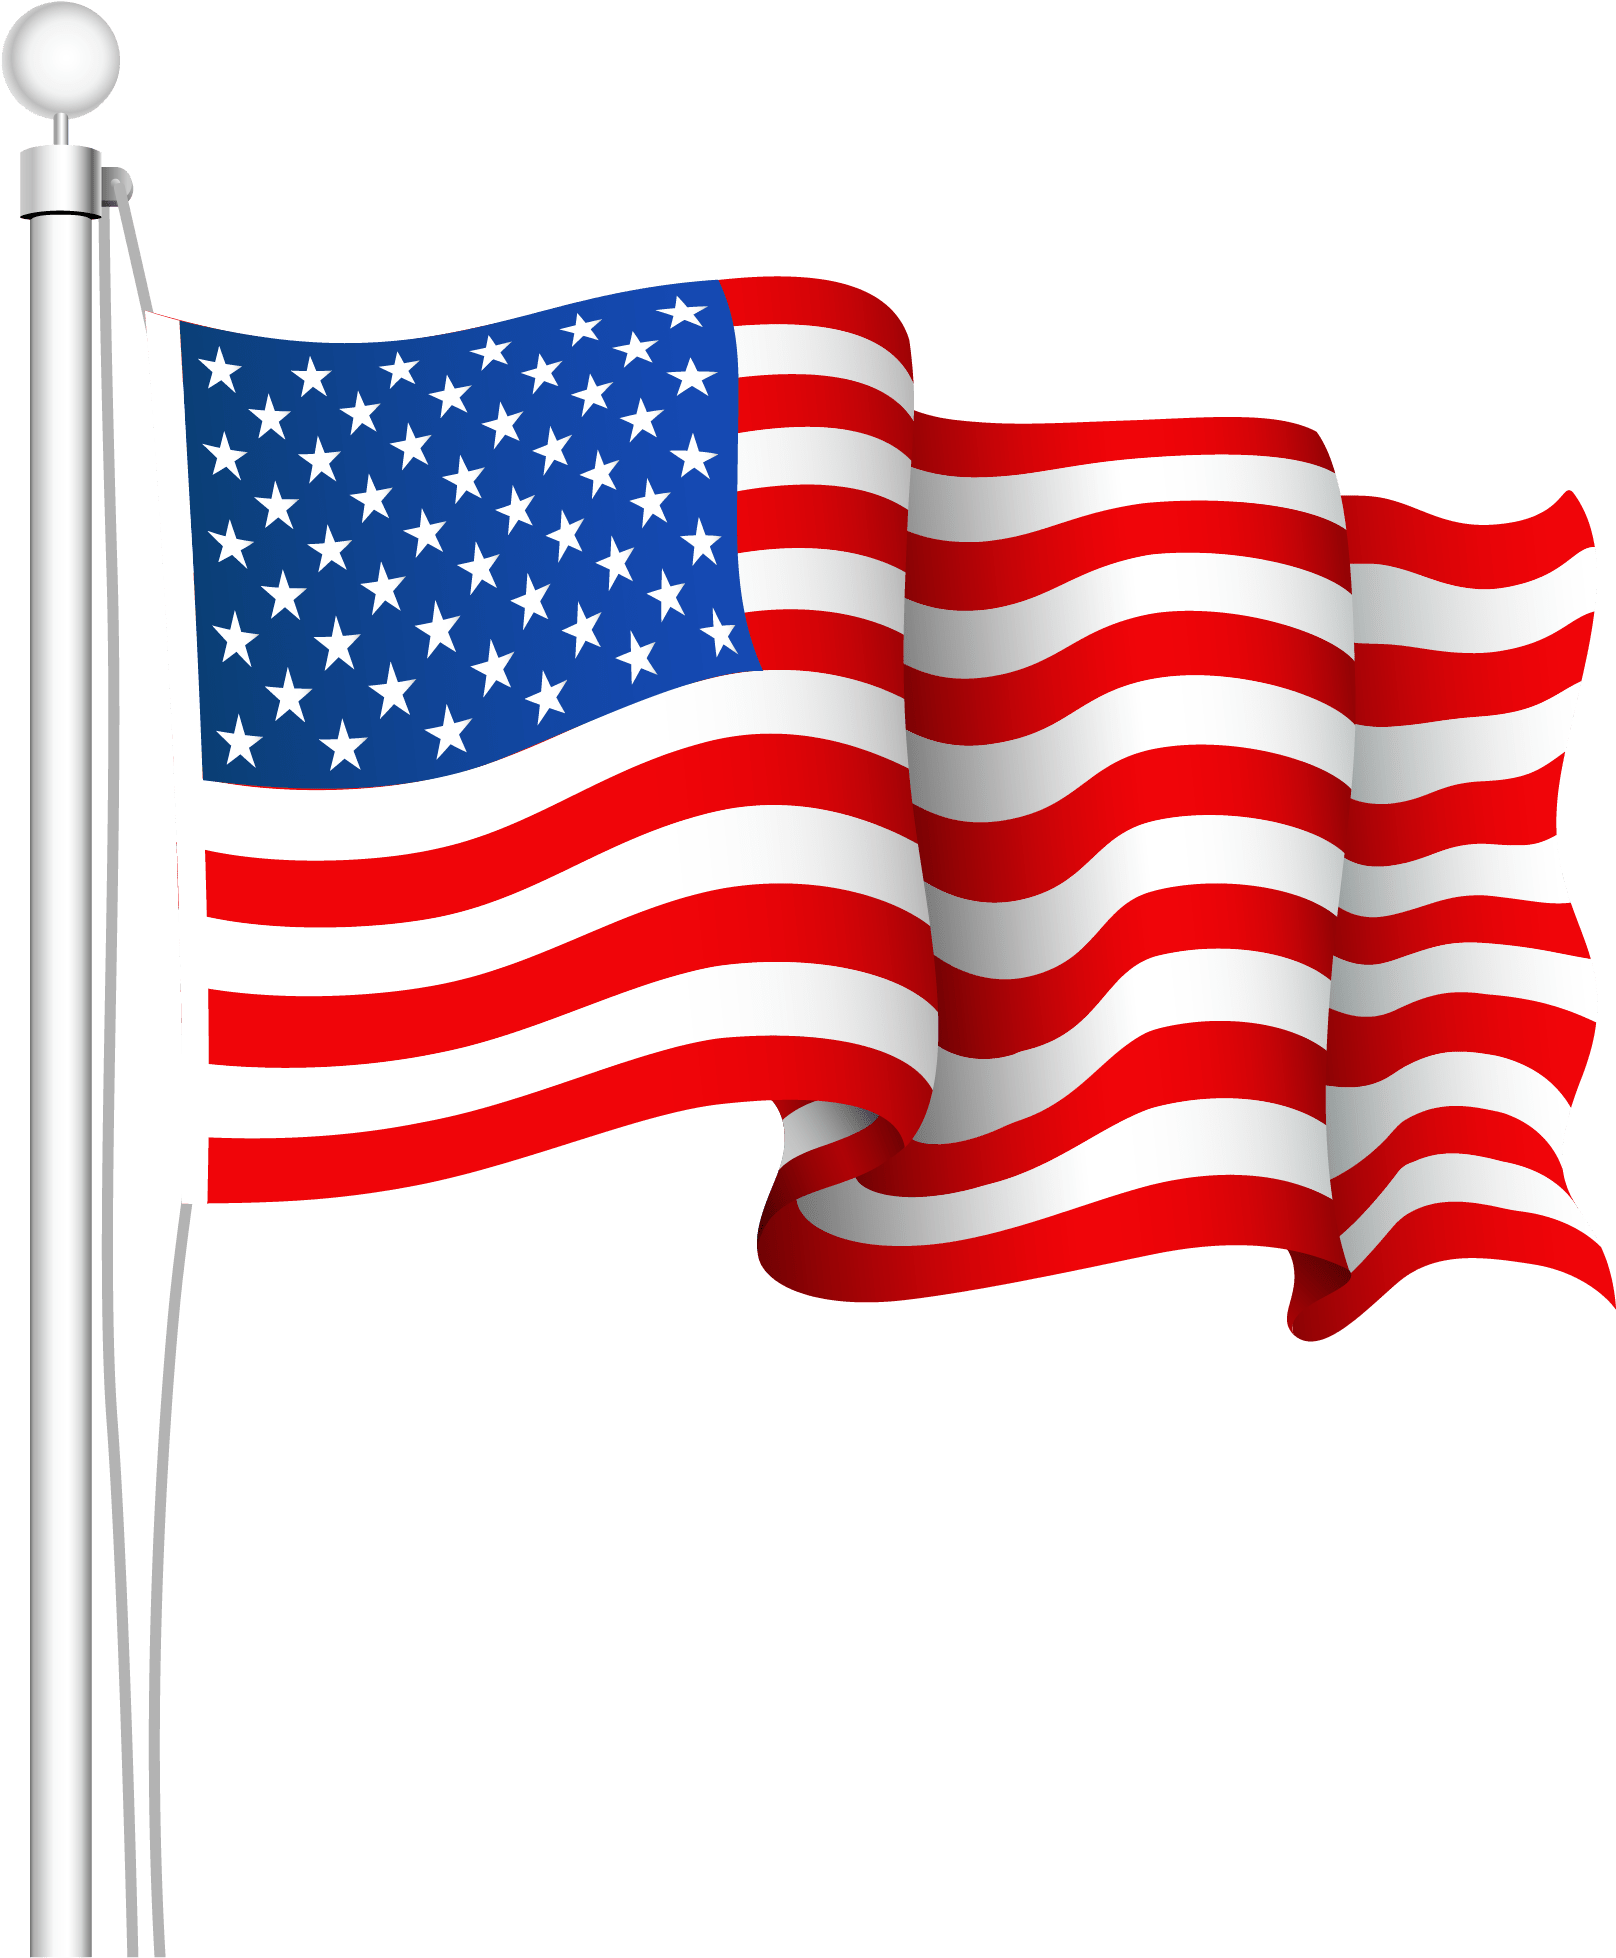 American Flag Waving Png : american, waving, Download, Collection, Clipart, American, Image, Background, PNGkey.com